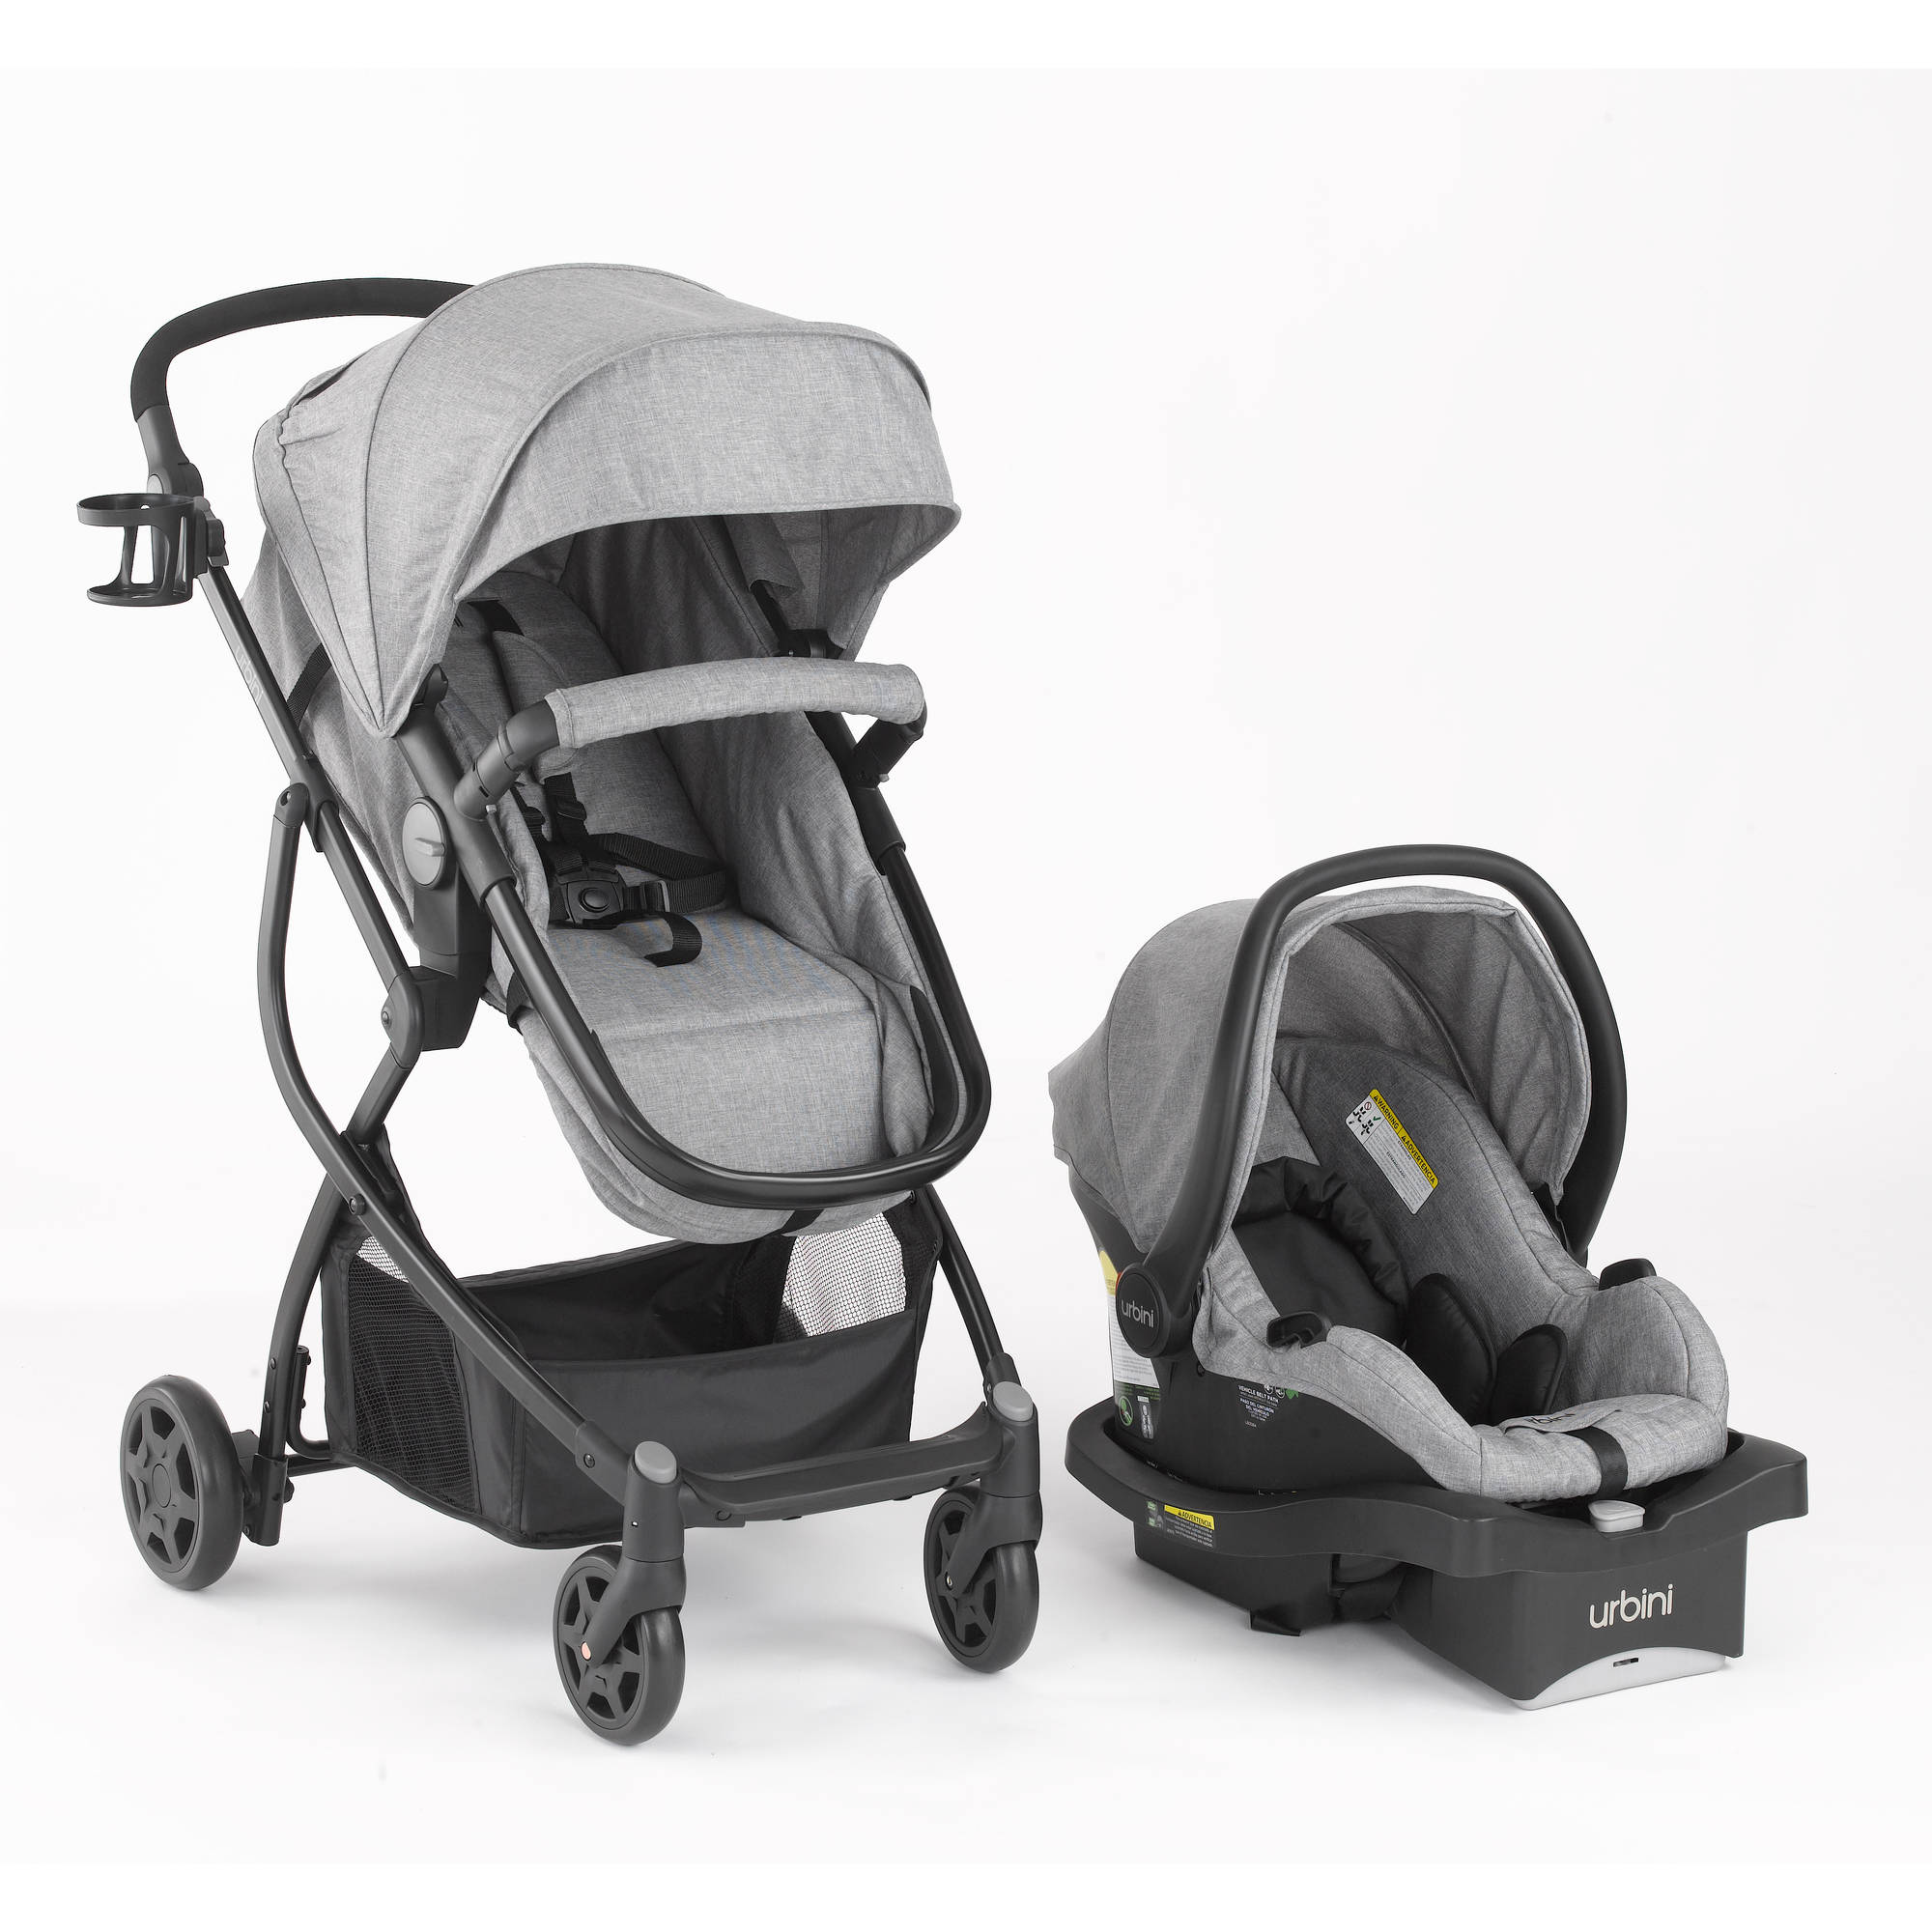 Urbini Omni Plus 3 in 1 Travel System